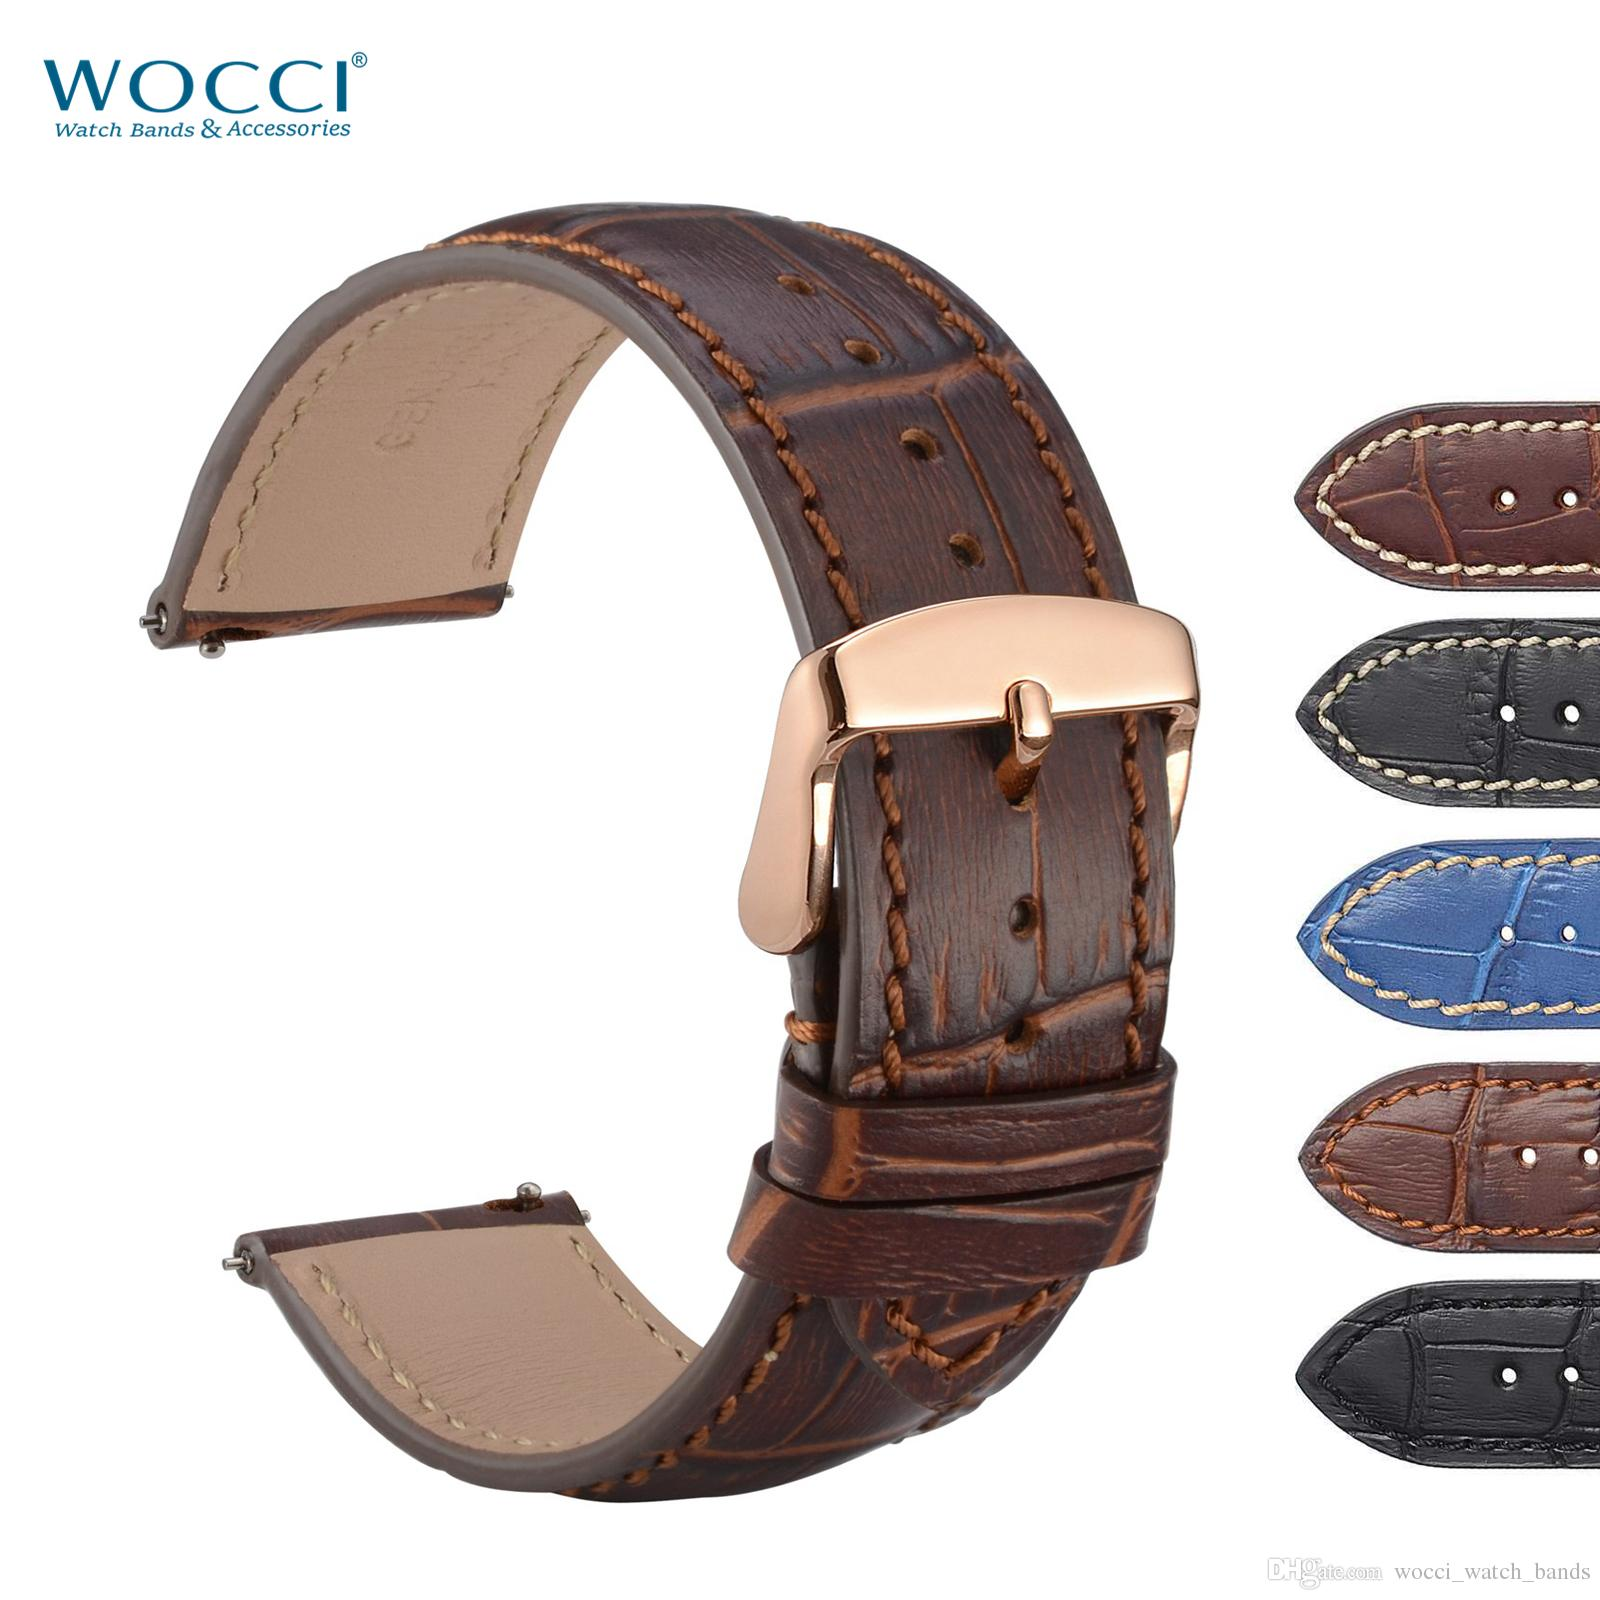 e06a8768d WOCCI Watch Band 18mm 20mm 22mm Alligator Crocodile Grain Leather  Wristwatch Strap With Rose Gold Buckle Quick Release For Men Women Best Leather  Watch Band ...